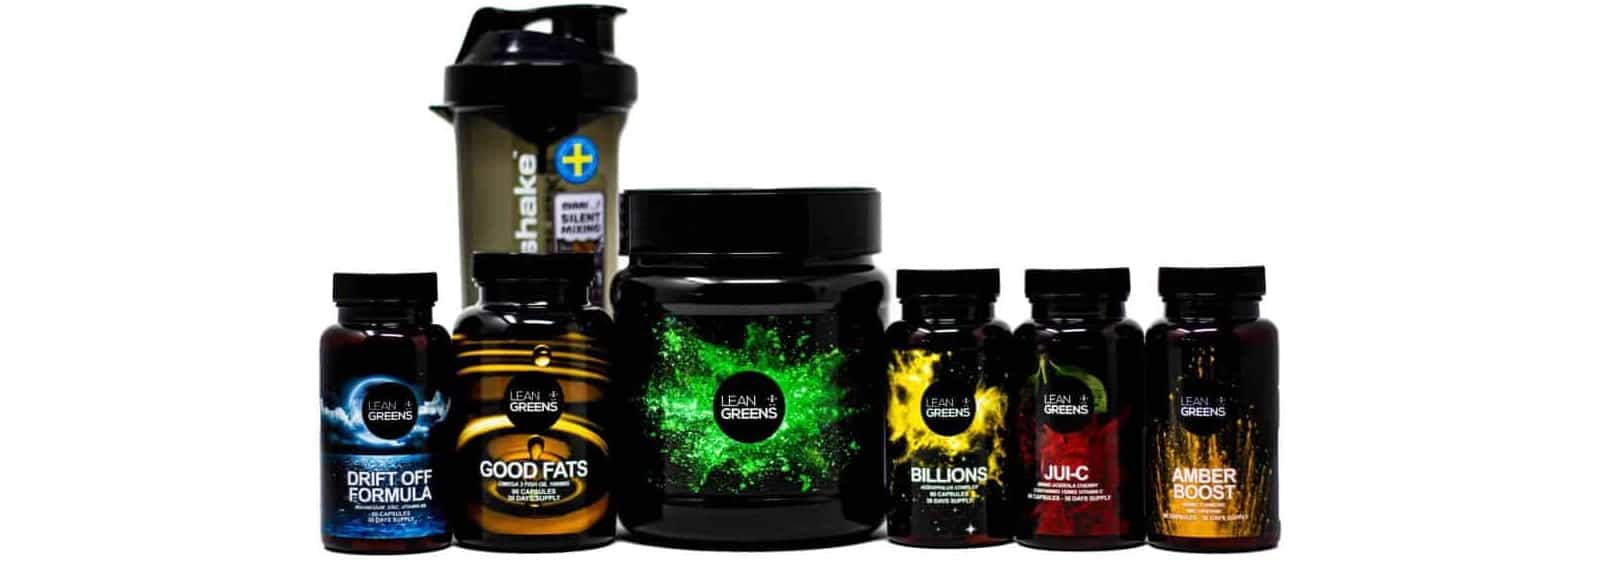 Lean Greens Nutritional Supplements UK